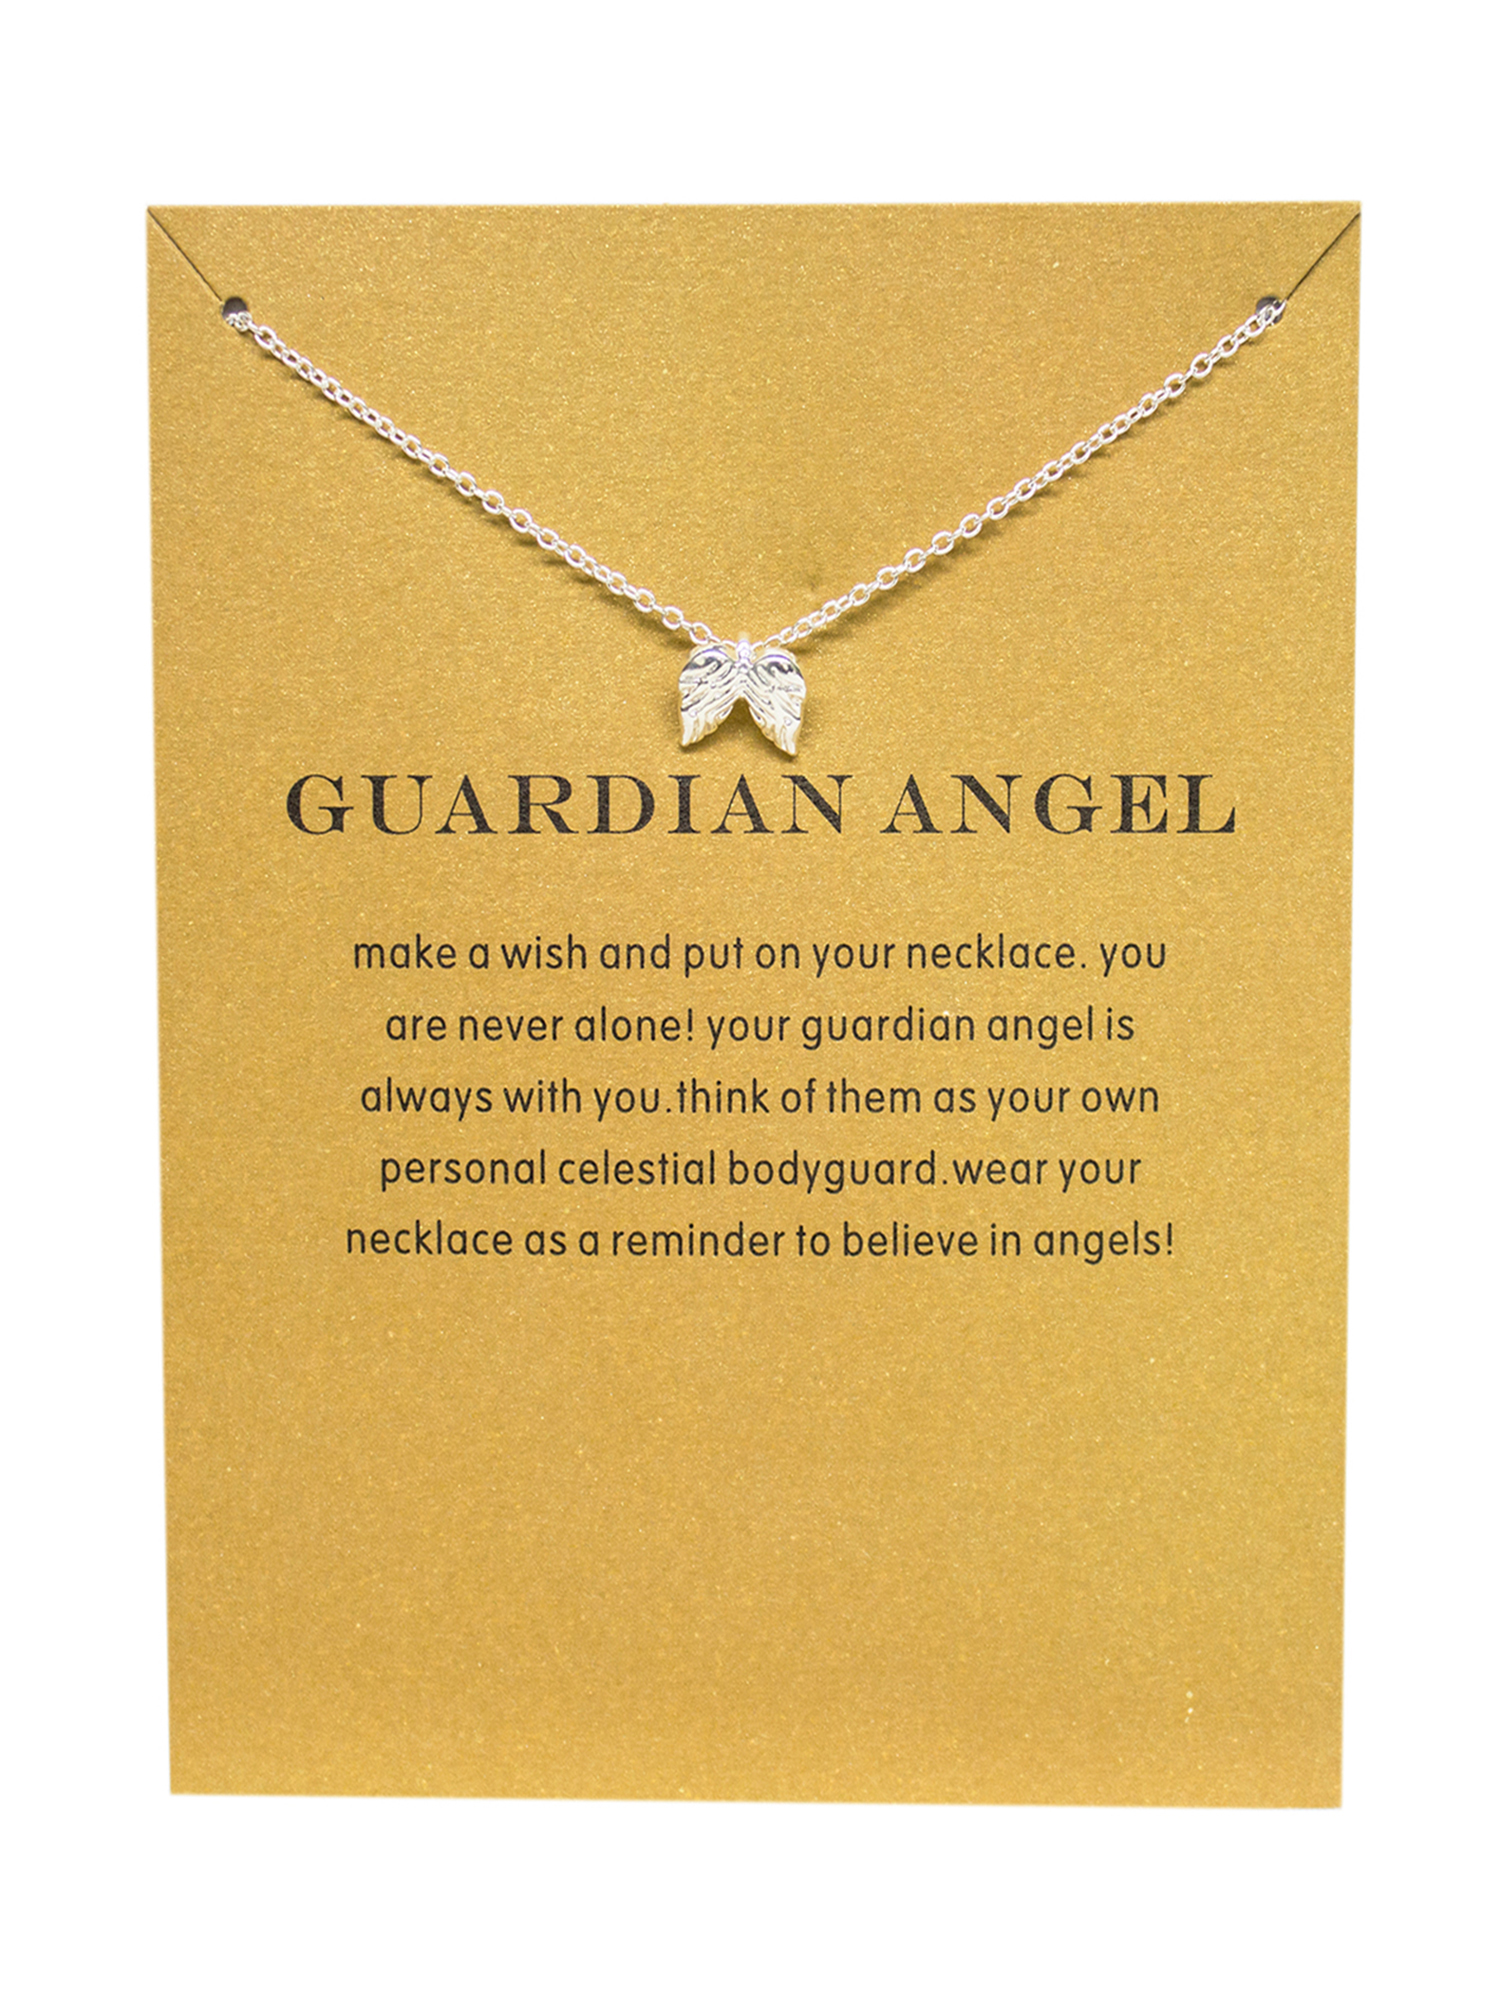 StylesILove - StylesILove Inspirational Quote Valentine\'s Day Clavicle  Chain Women\'s Necklace in Original Package (Silver, Guardian Angel) - ...